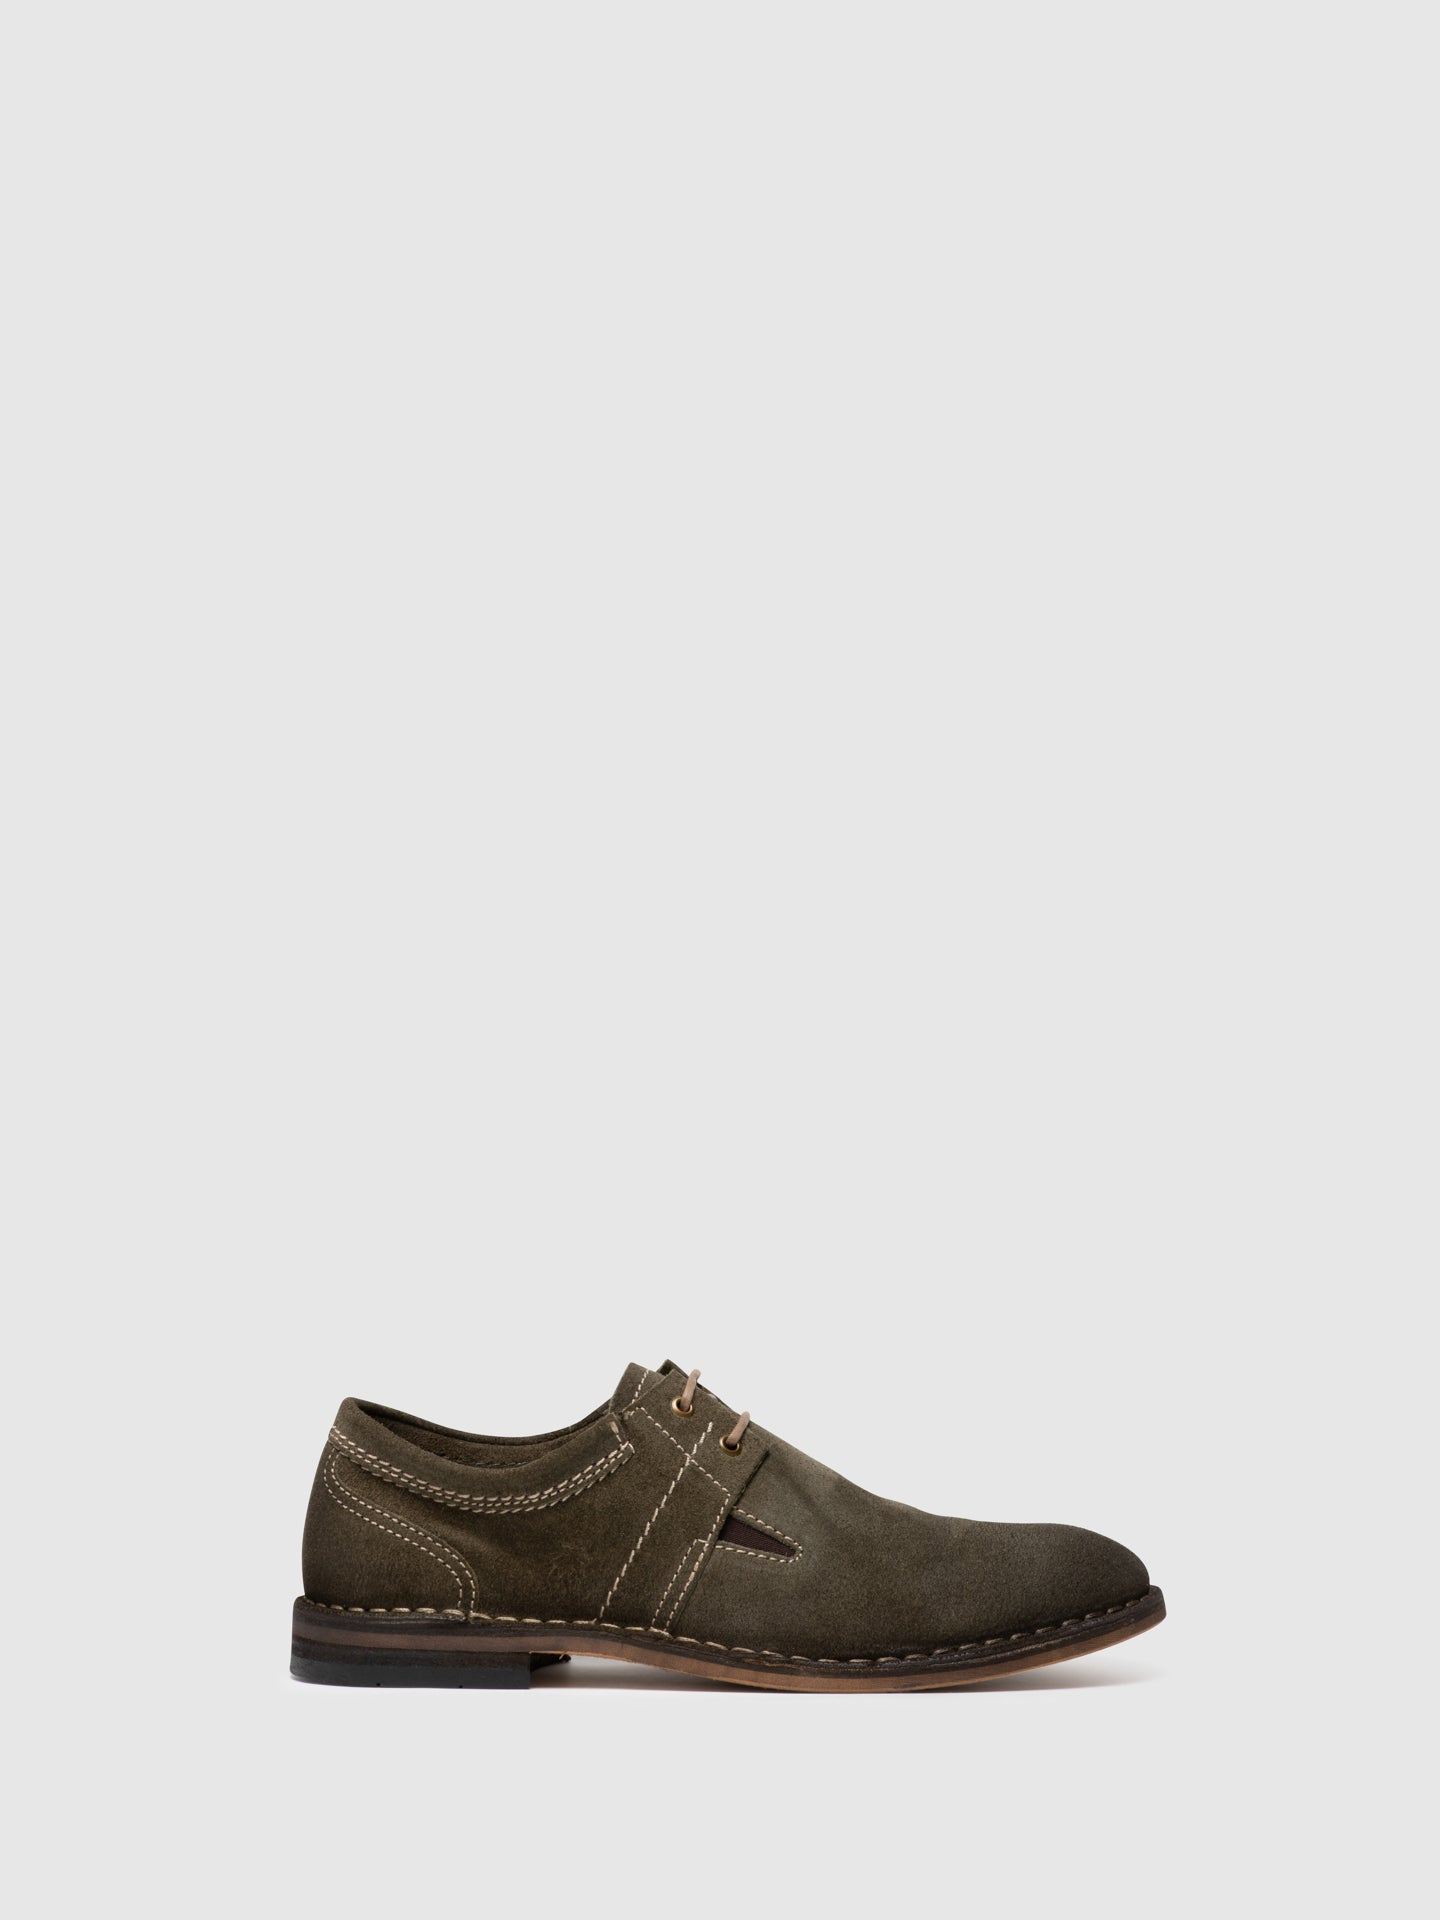 Fly London Sapatos Derby em Khaki